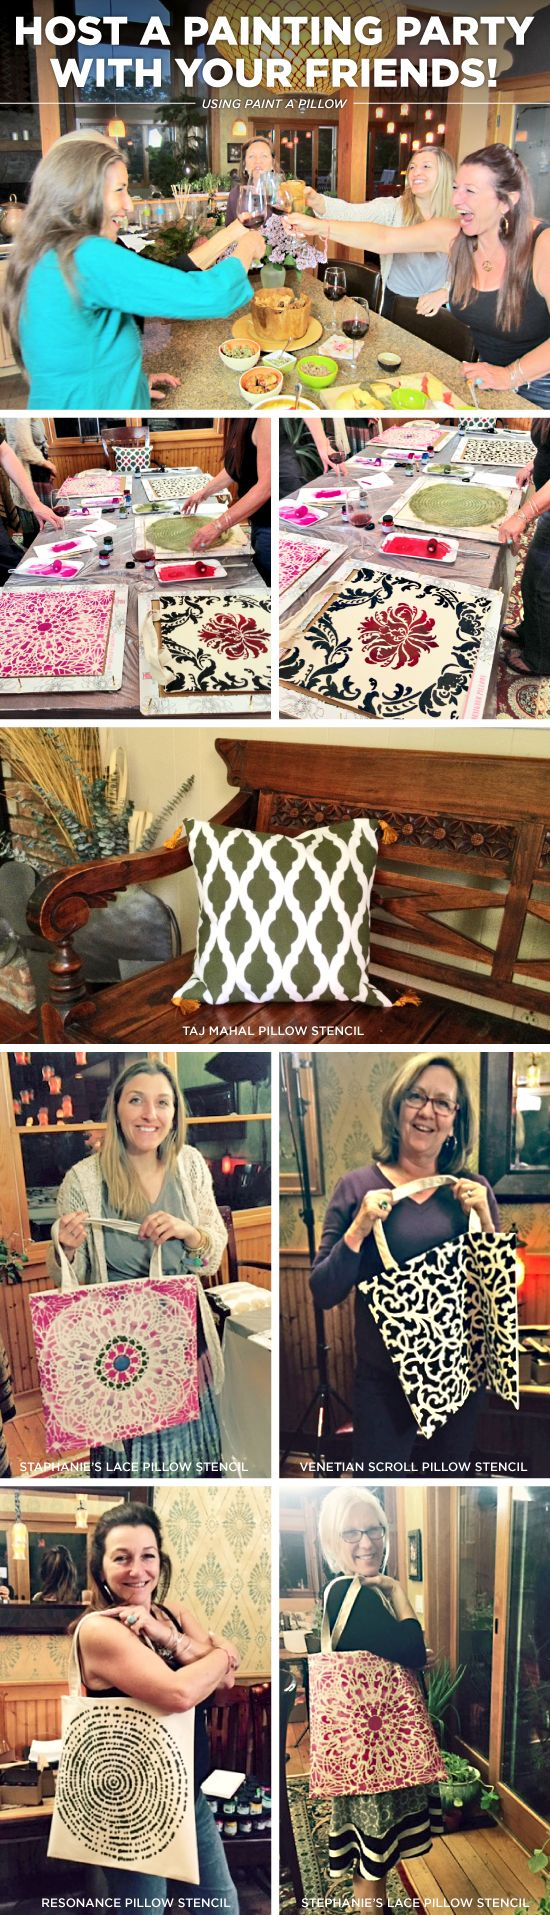 Cutting Edge Stencils shares how to host a Paint-A-Pillow craft night to make DIY accent pillows. http://paintapillow.com/index.php/paint-a-pillow-6-pillow-party-kit.html